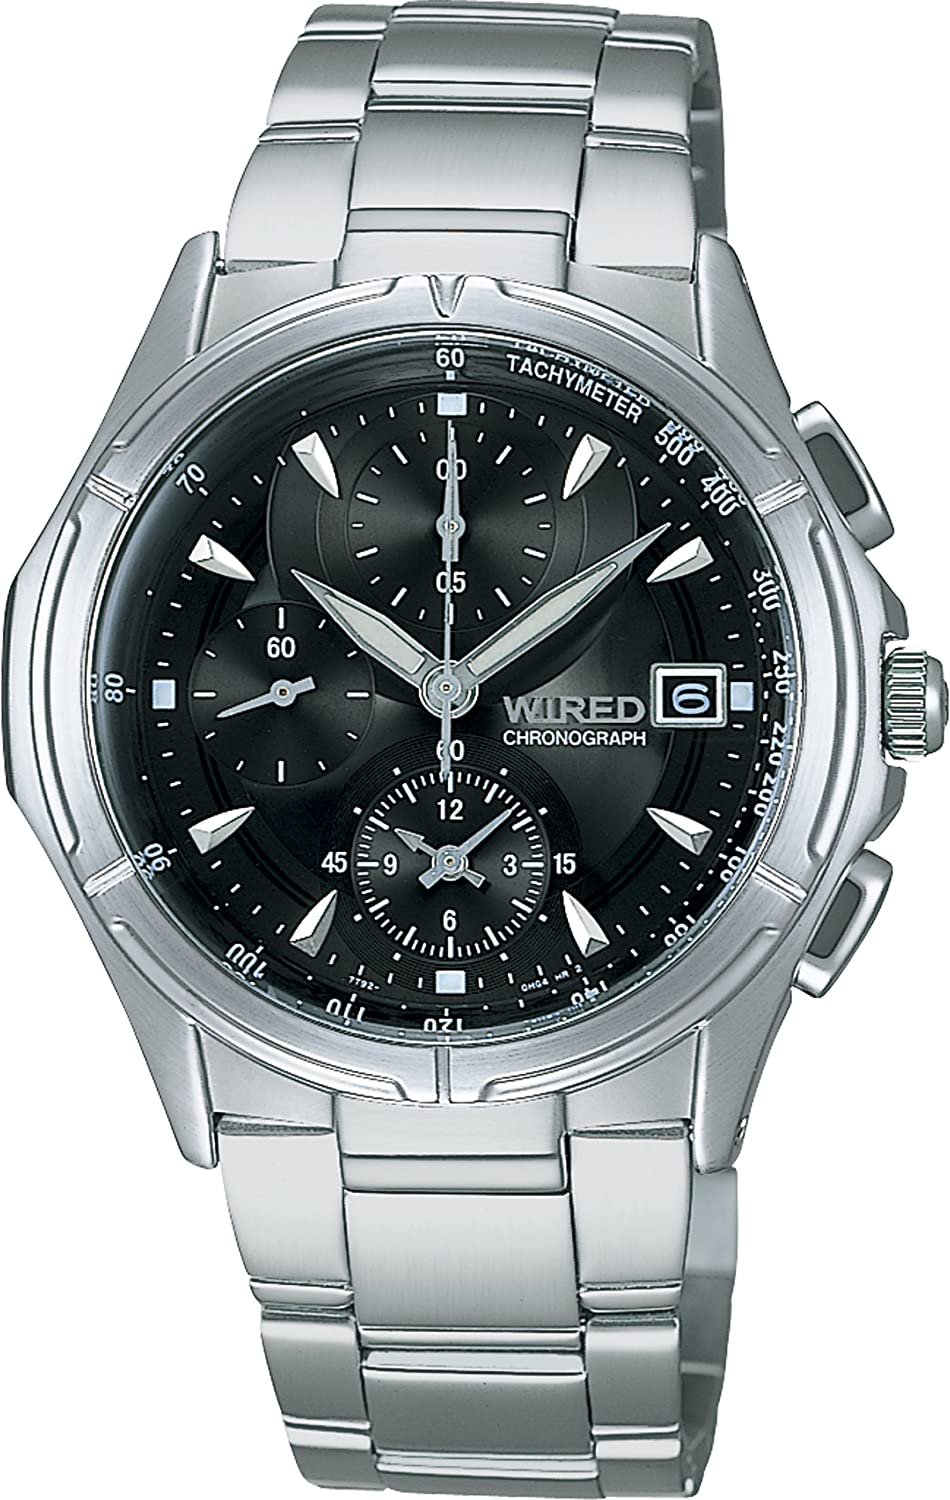 Amazon.com: WIRED watches chronograph stainless steel model AGBV139 mens watch: Watches